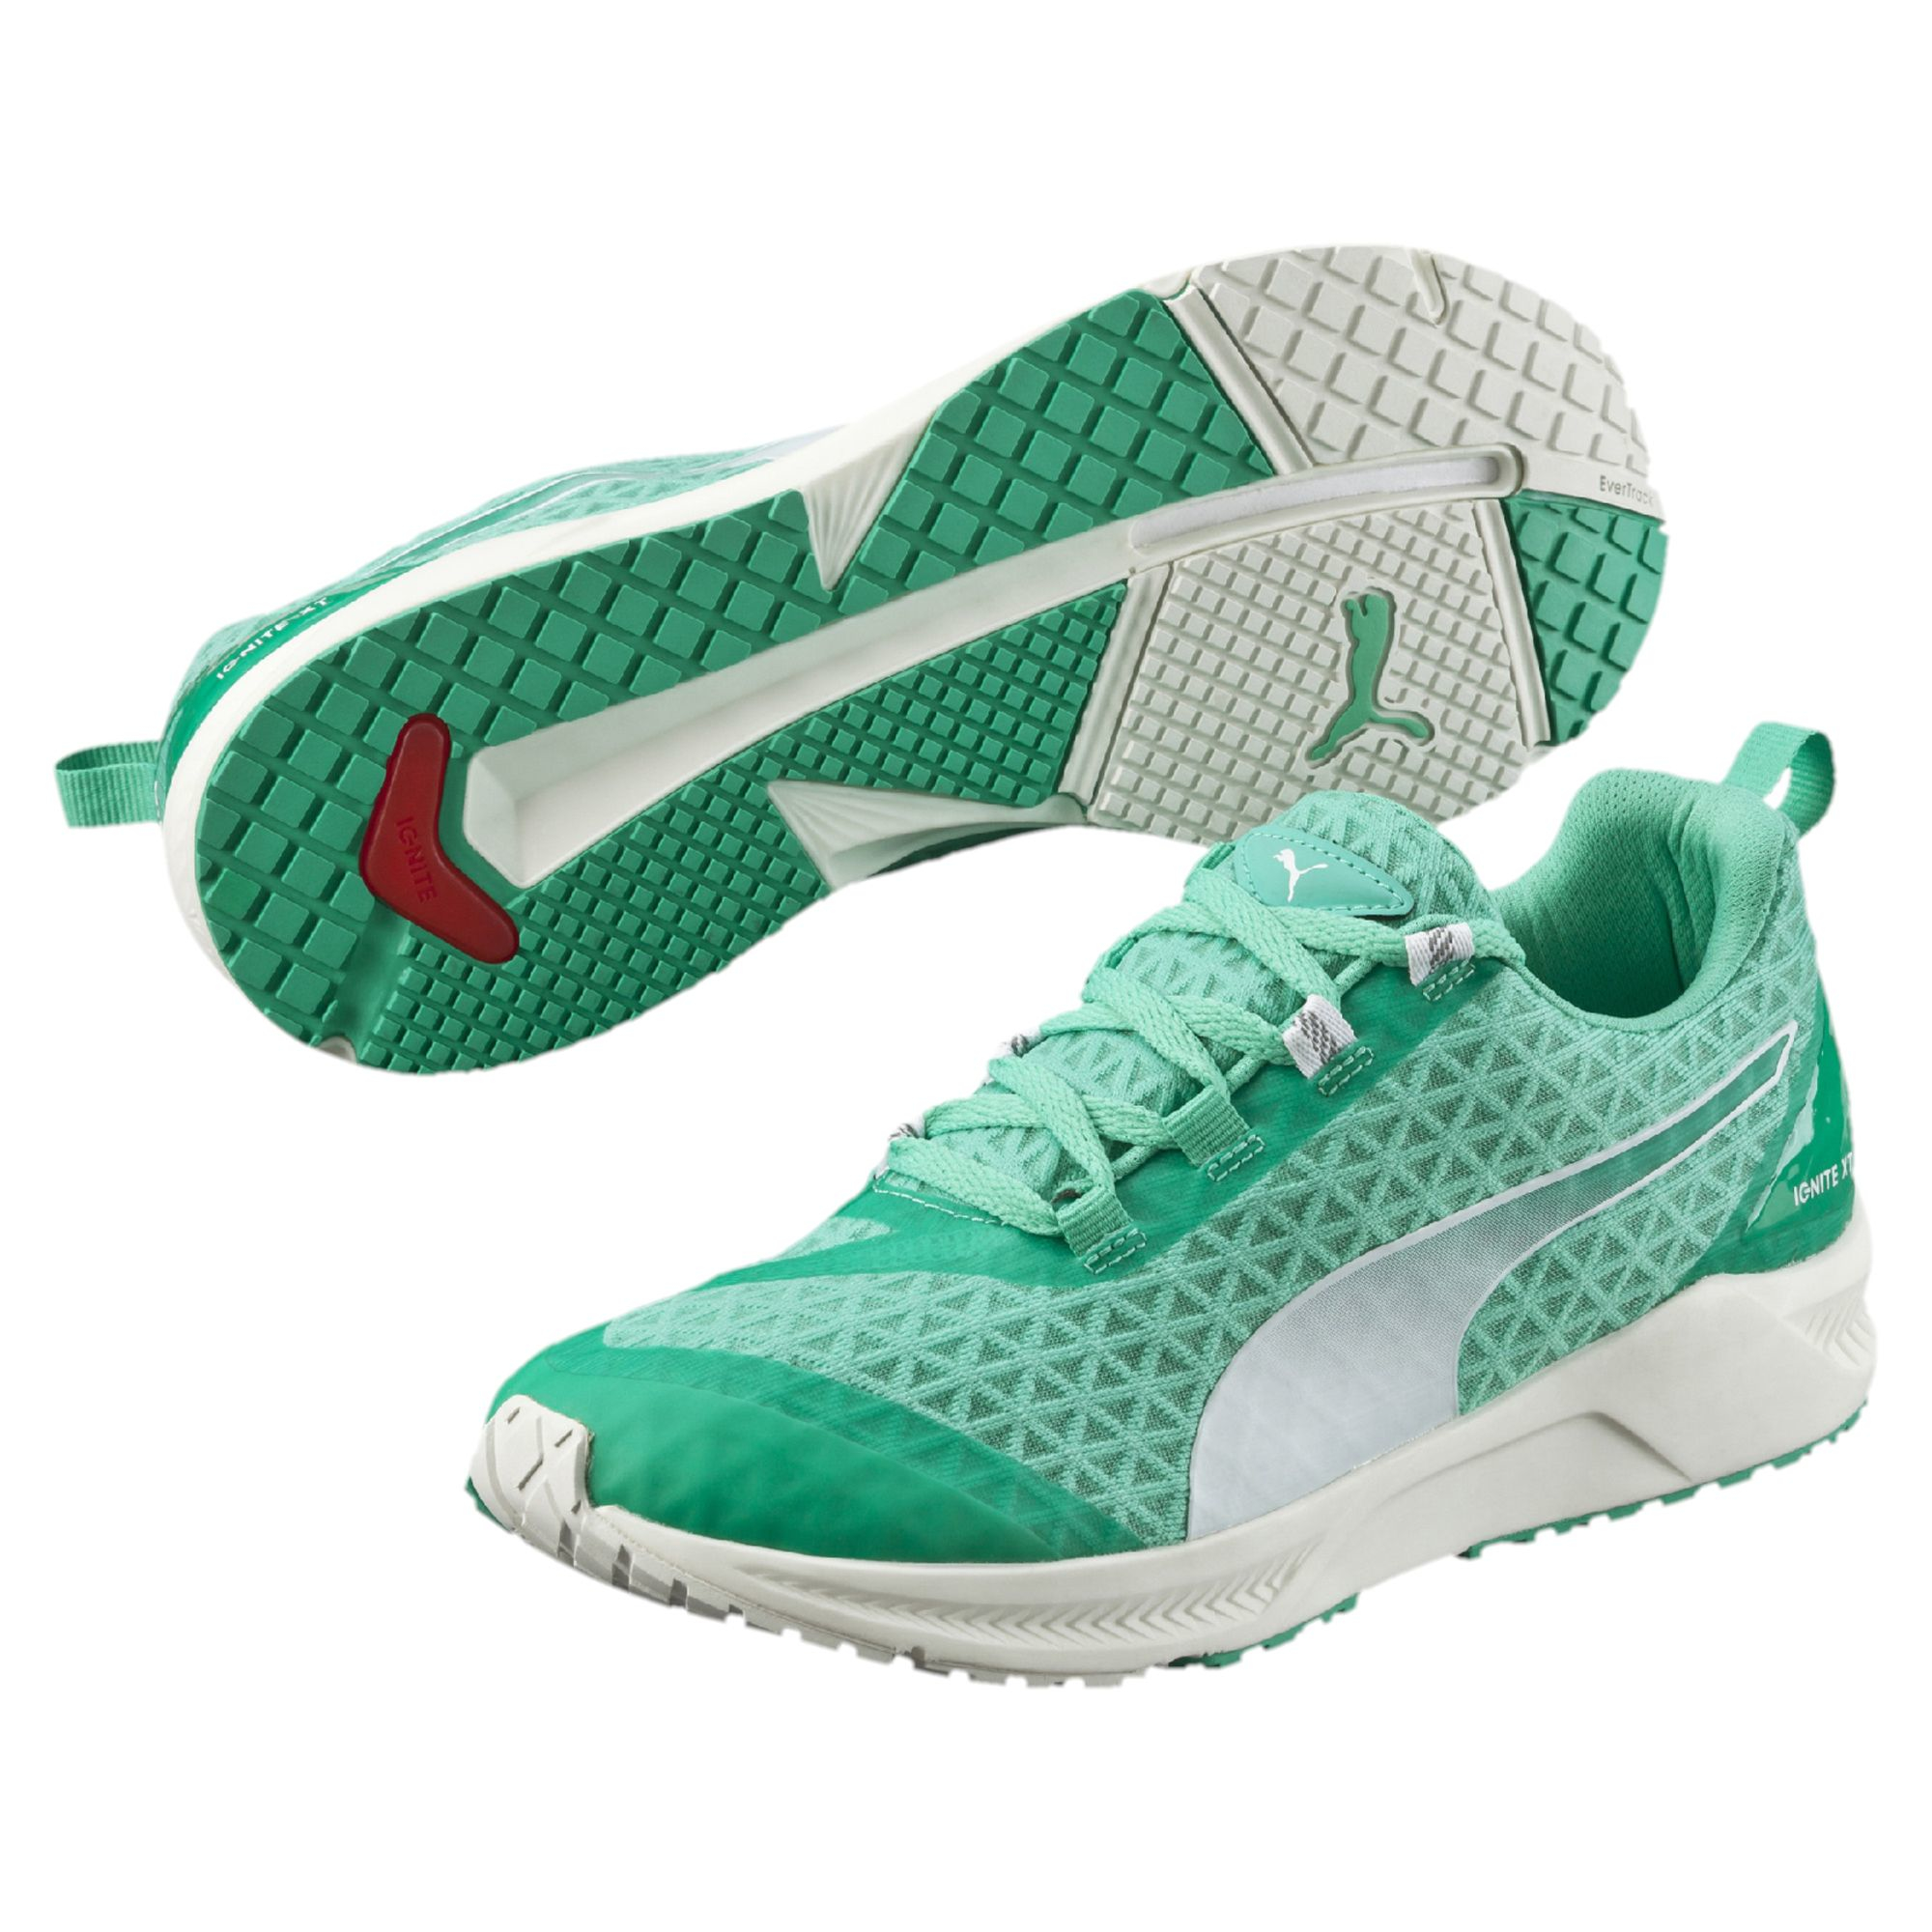 Lyst - Puma Ignite Xt Filtered Women s Training Shoes in White 9cf248457